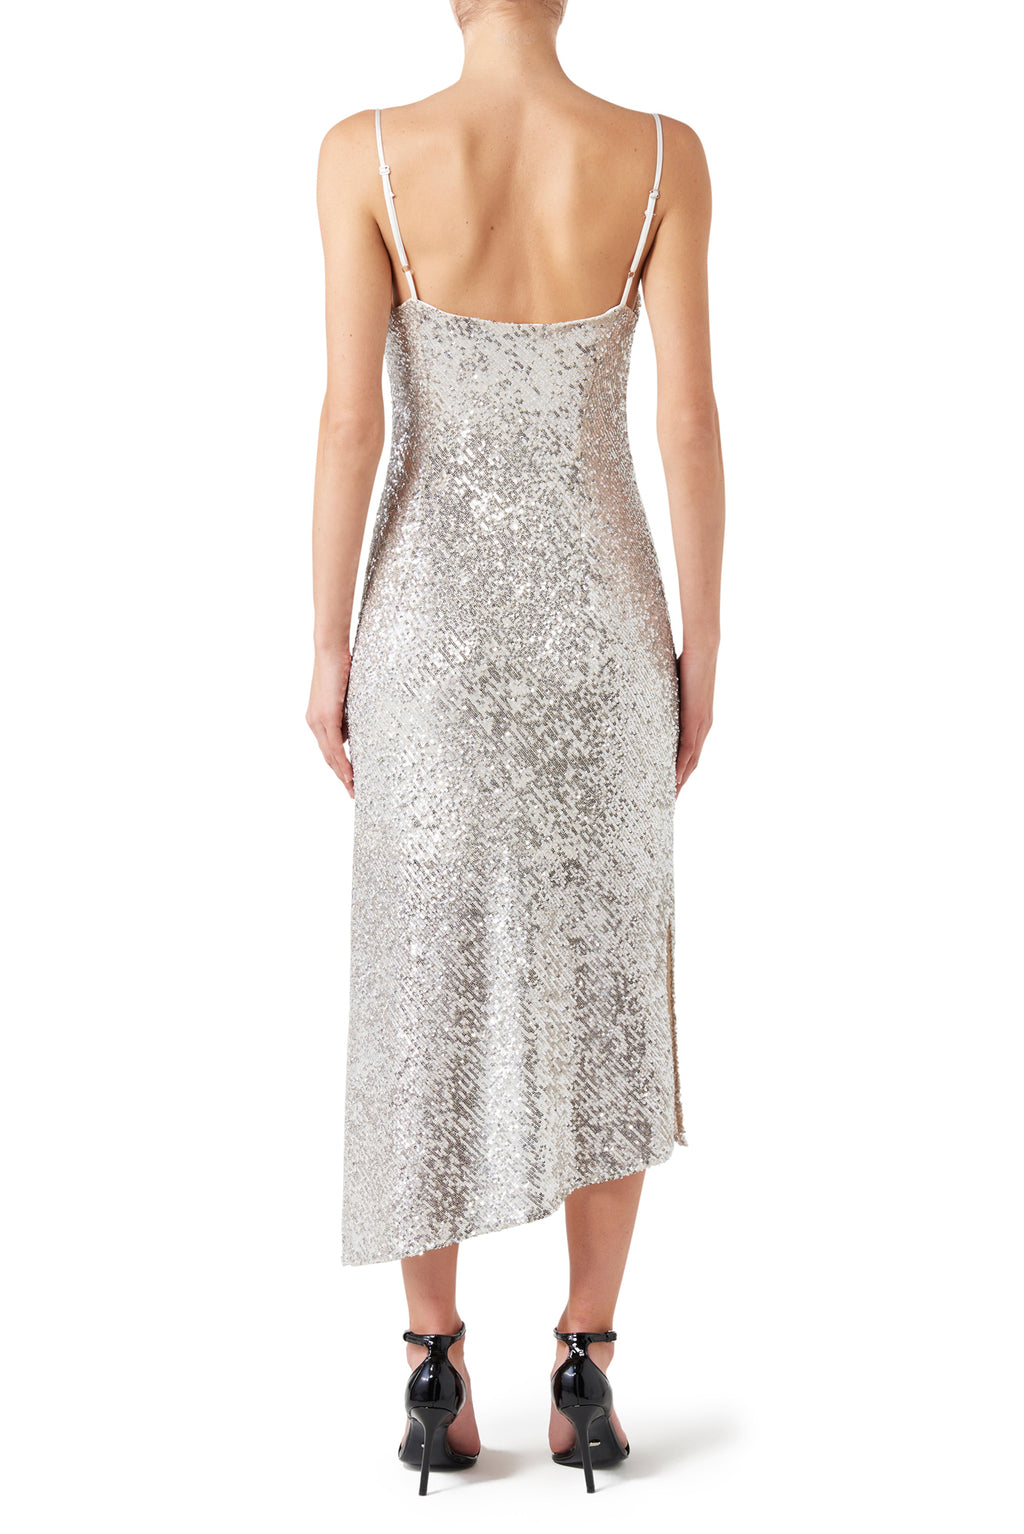 Mimi Slip Dress - Silver